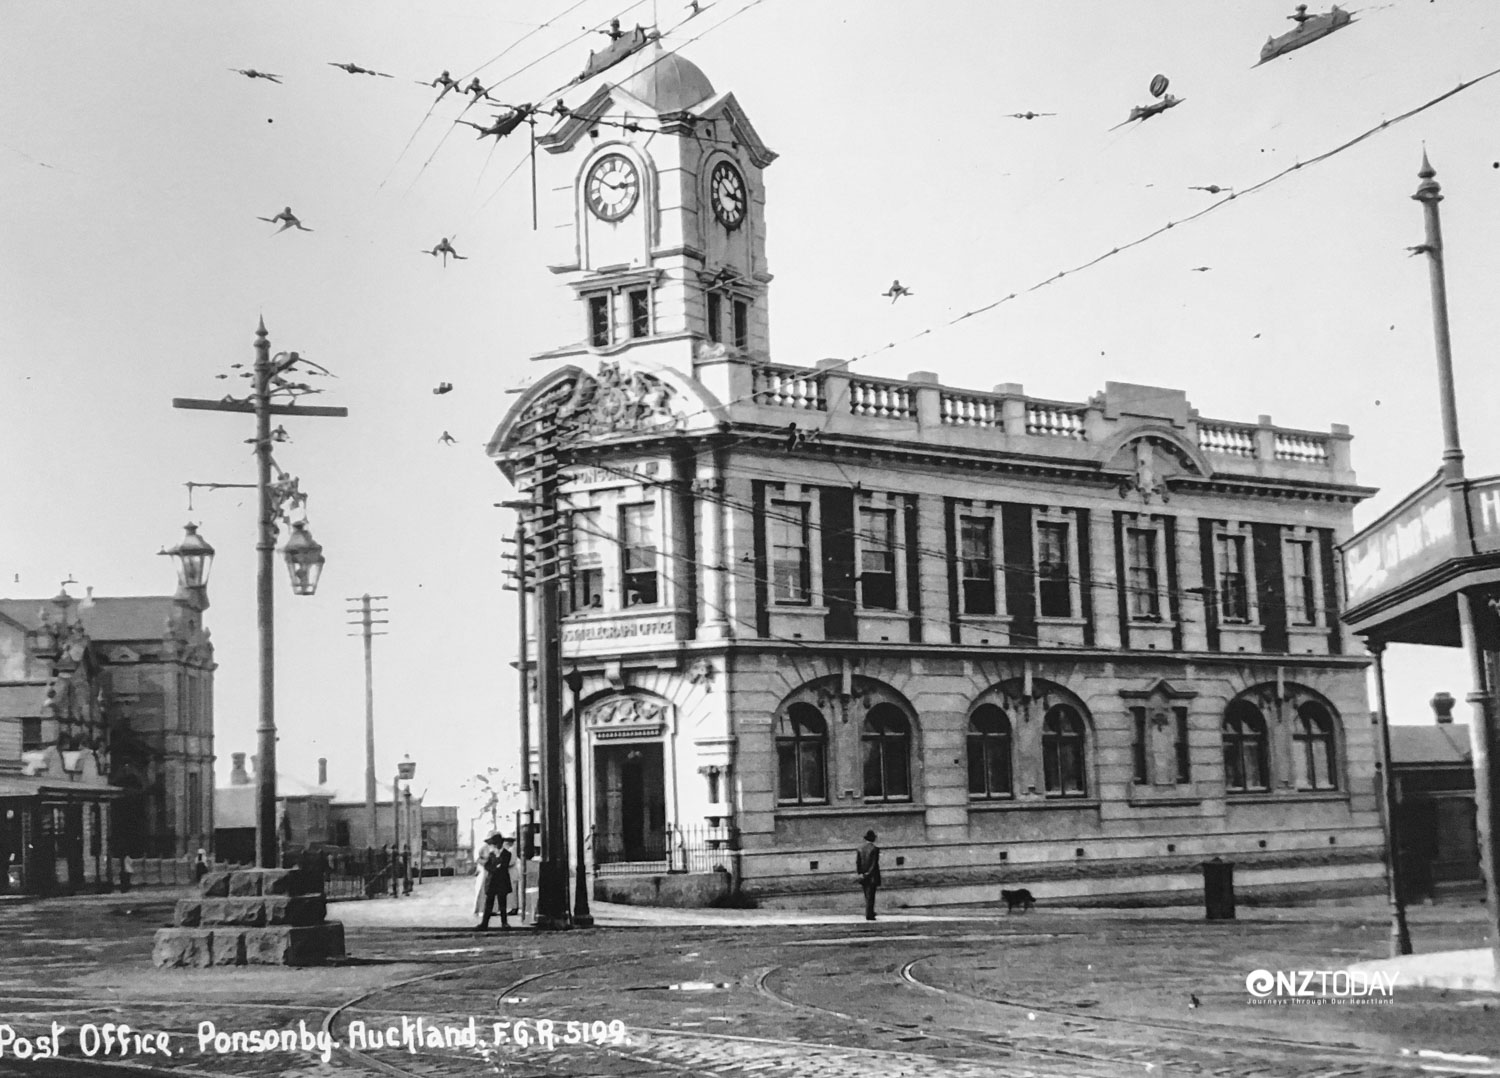 The Ponsonby Post Office in its heyday circa 1915